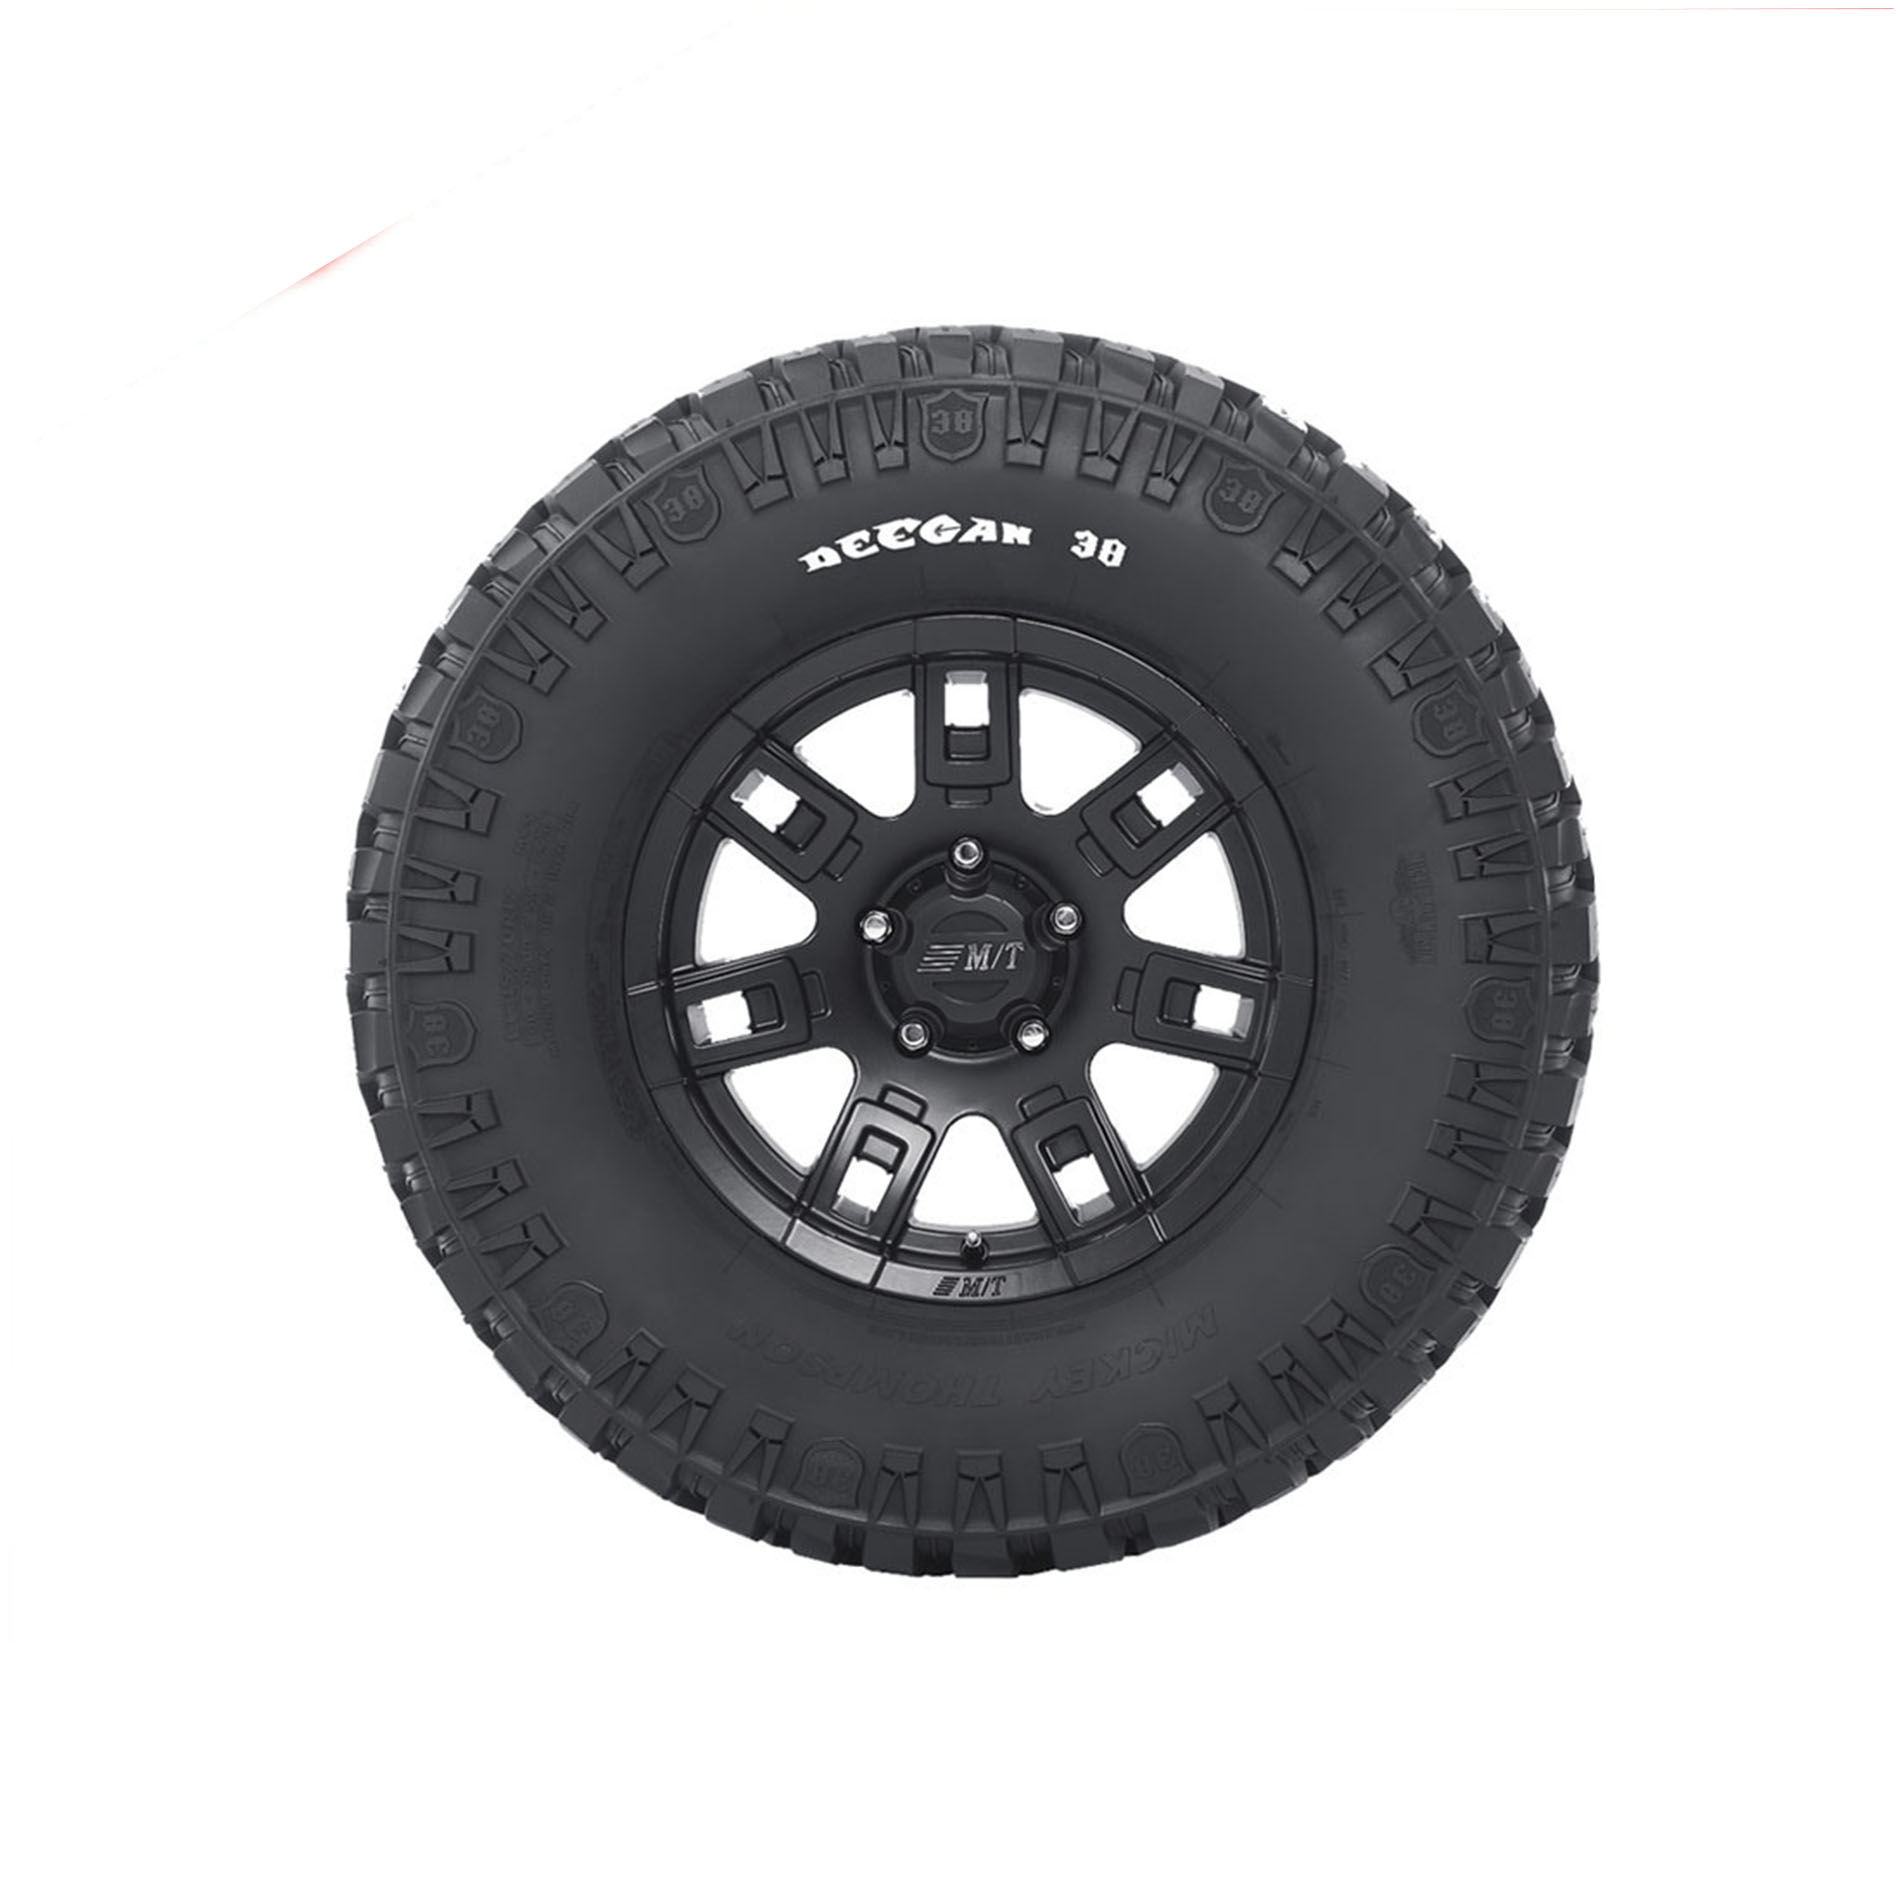 1 PC New Mickey Thompson All Terrain Tires P255/70R16 111T For Passenger Car